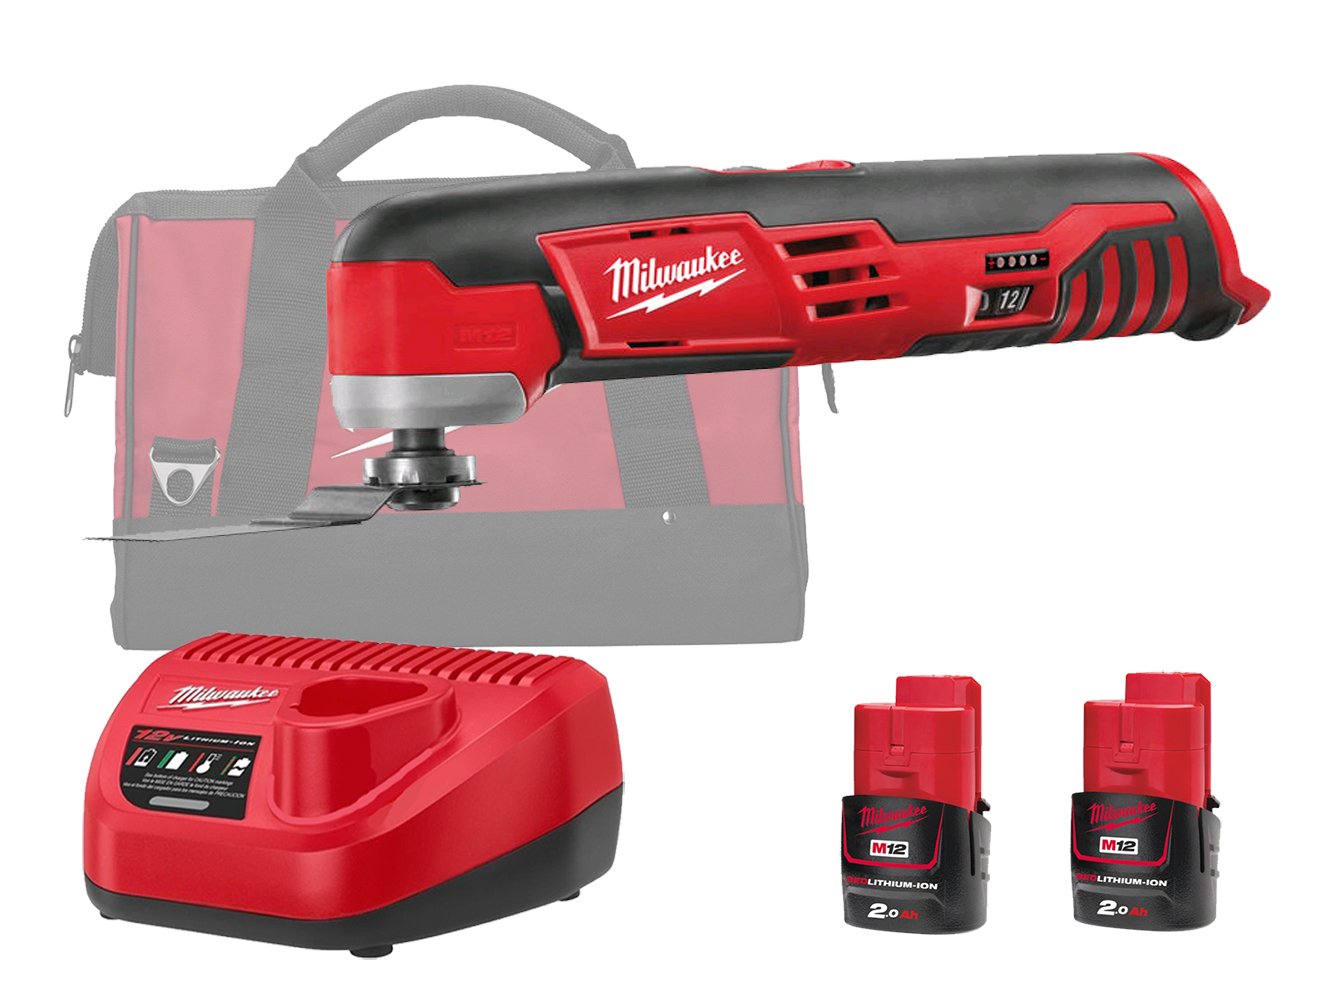 MILWAUKEE 12V COMPACT OSCILLATING MULTI TOOL - C12MT  - 2.0AH PACK